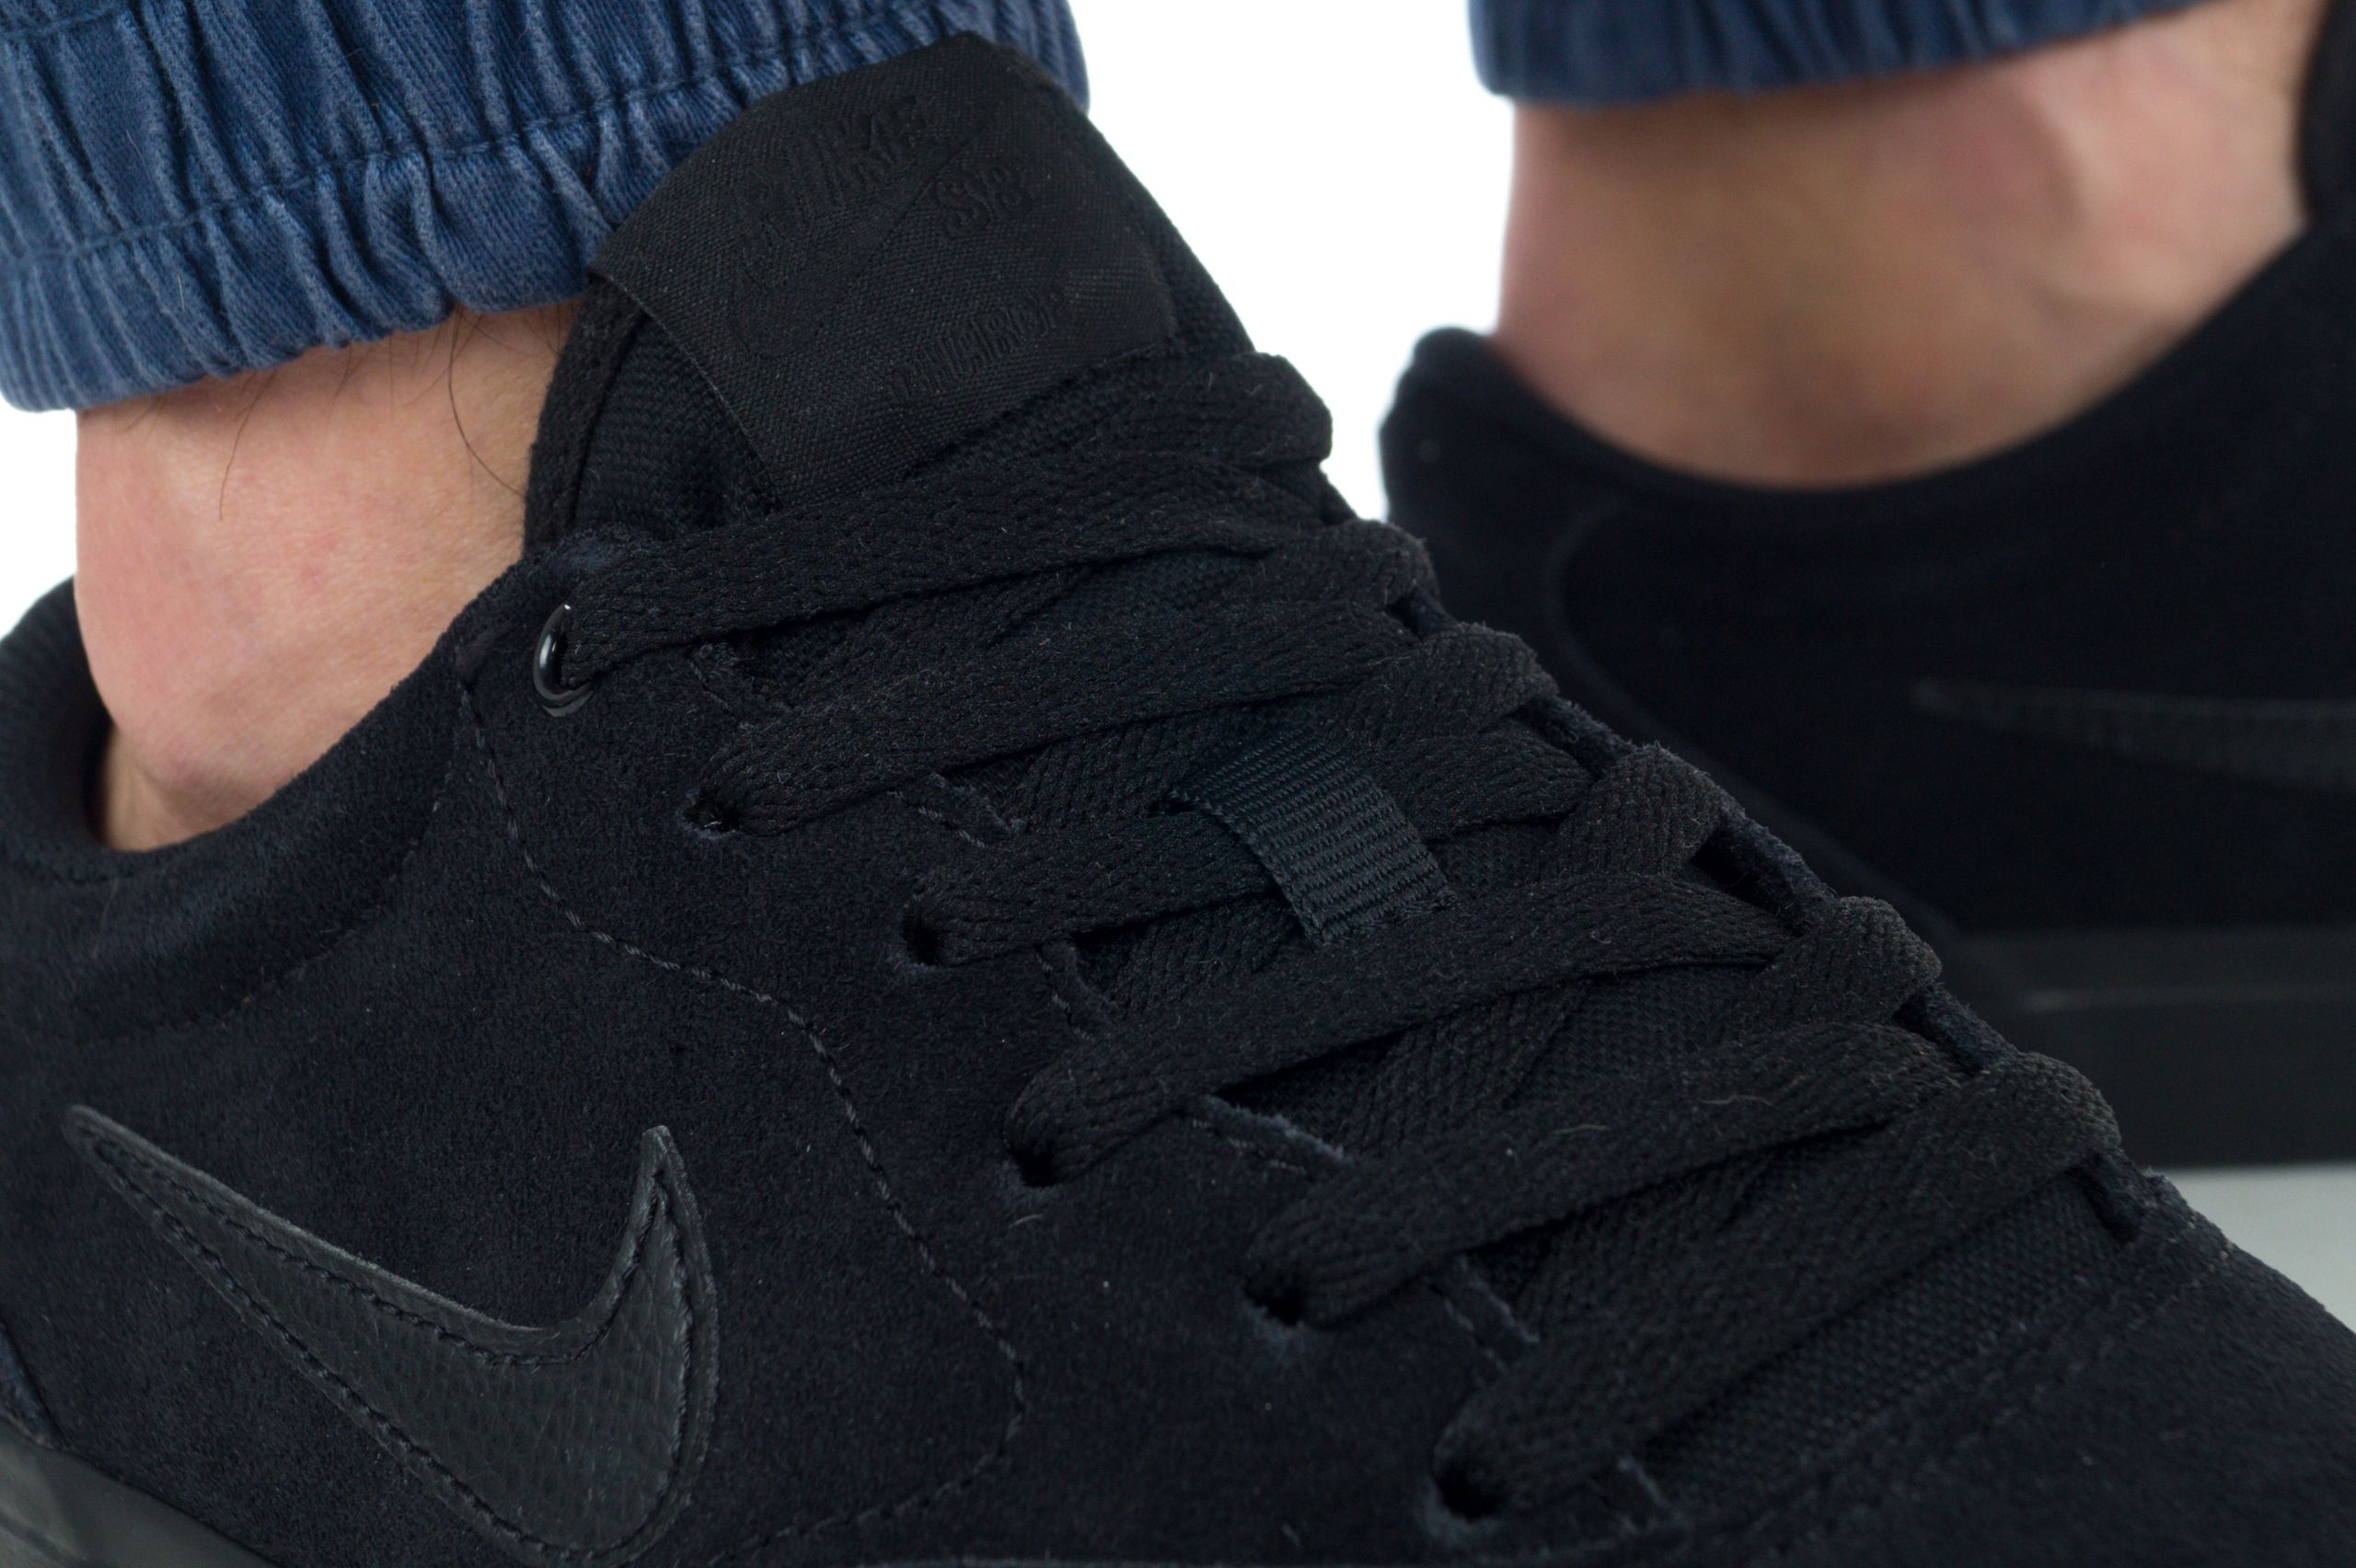 SB CHARGE SUEDE CT3463-003